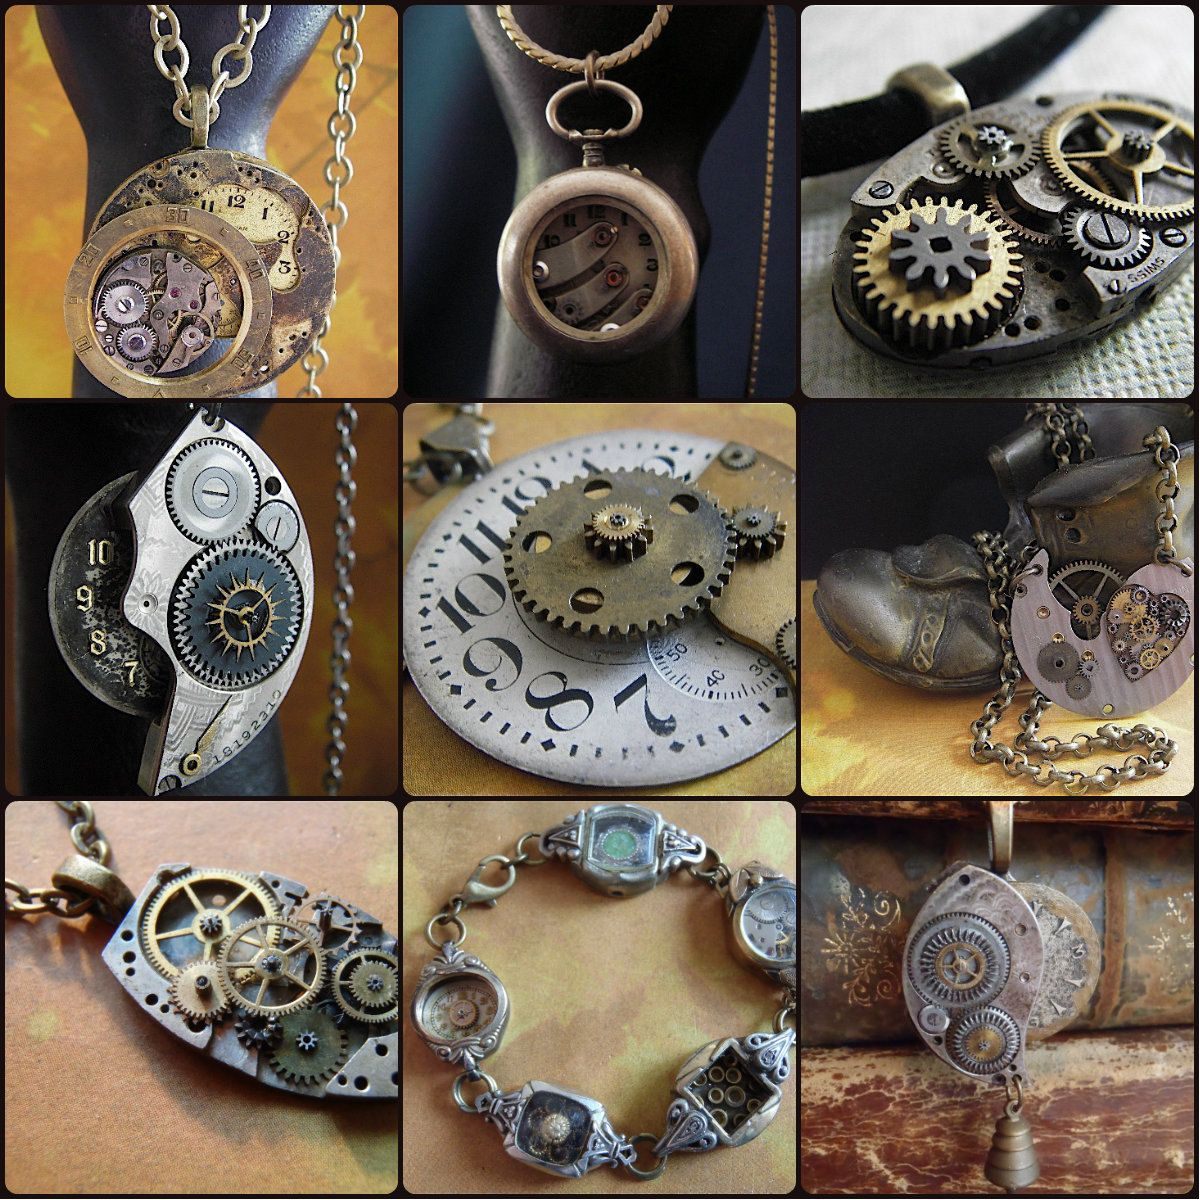 Is Steampunk Jewelry A Craft Or An Art: The Art Of Creating Steampunk